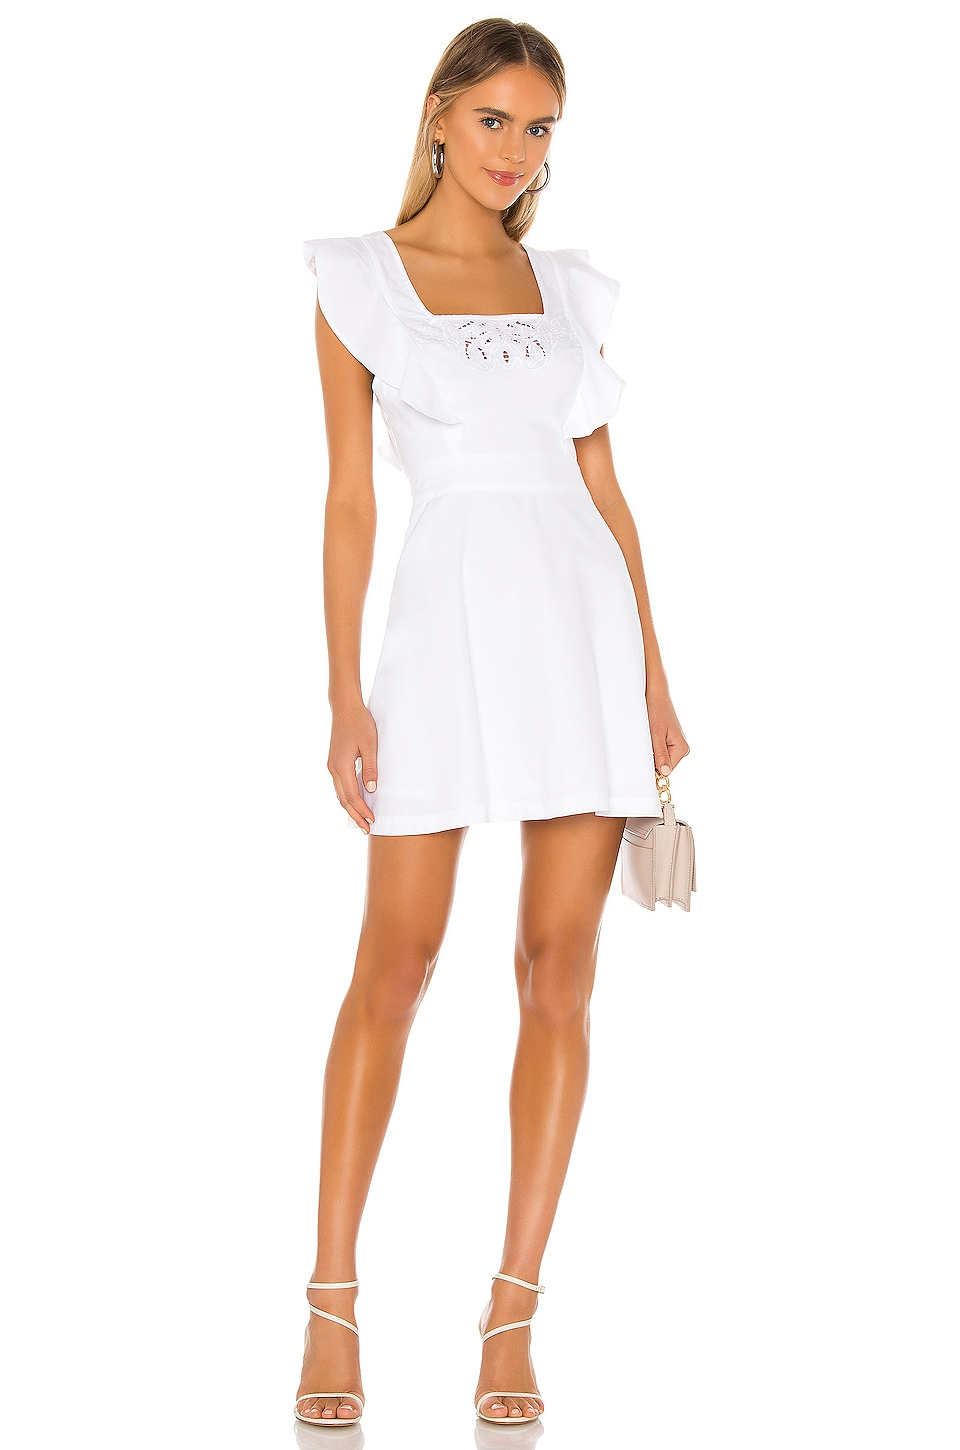 Tie Back Dress             BCBGeneration                                                                                                       CA$ 165.70 14